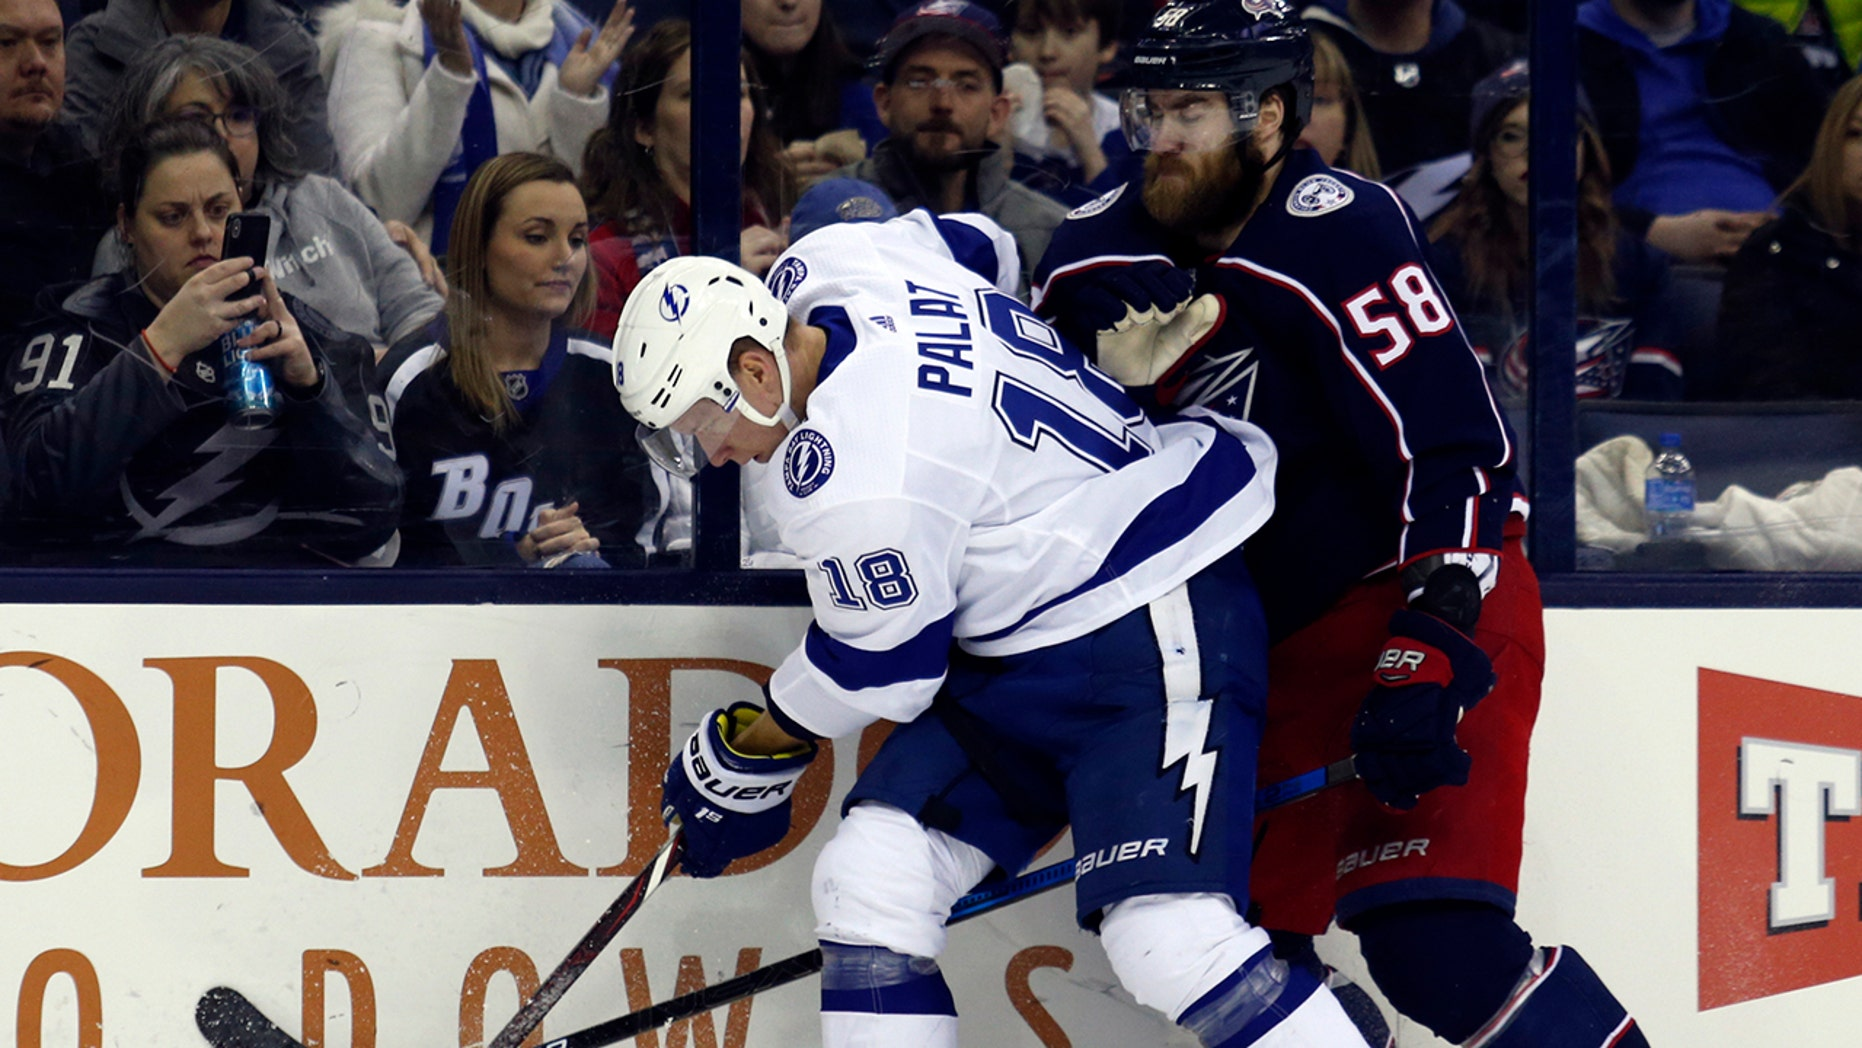 Tampa Bay Lightning forward Ondrej Palat, left, of the Czech Republic, works against Columbus Blue Jackets defenseman David Savard during the second period of an NHL hockey game in Columbus, Ohio, Monday, Feb. 18, 2019.